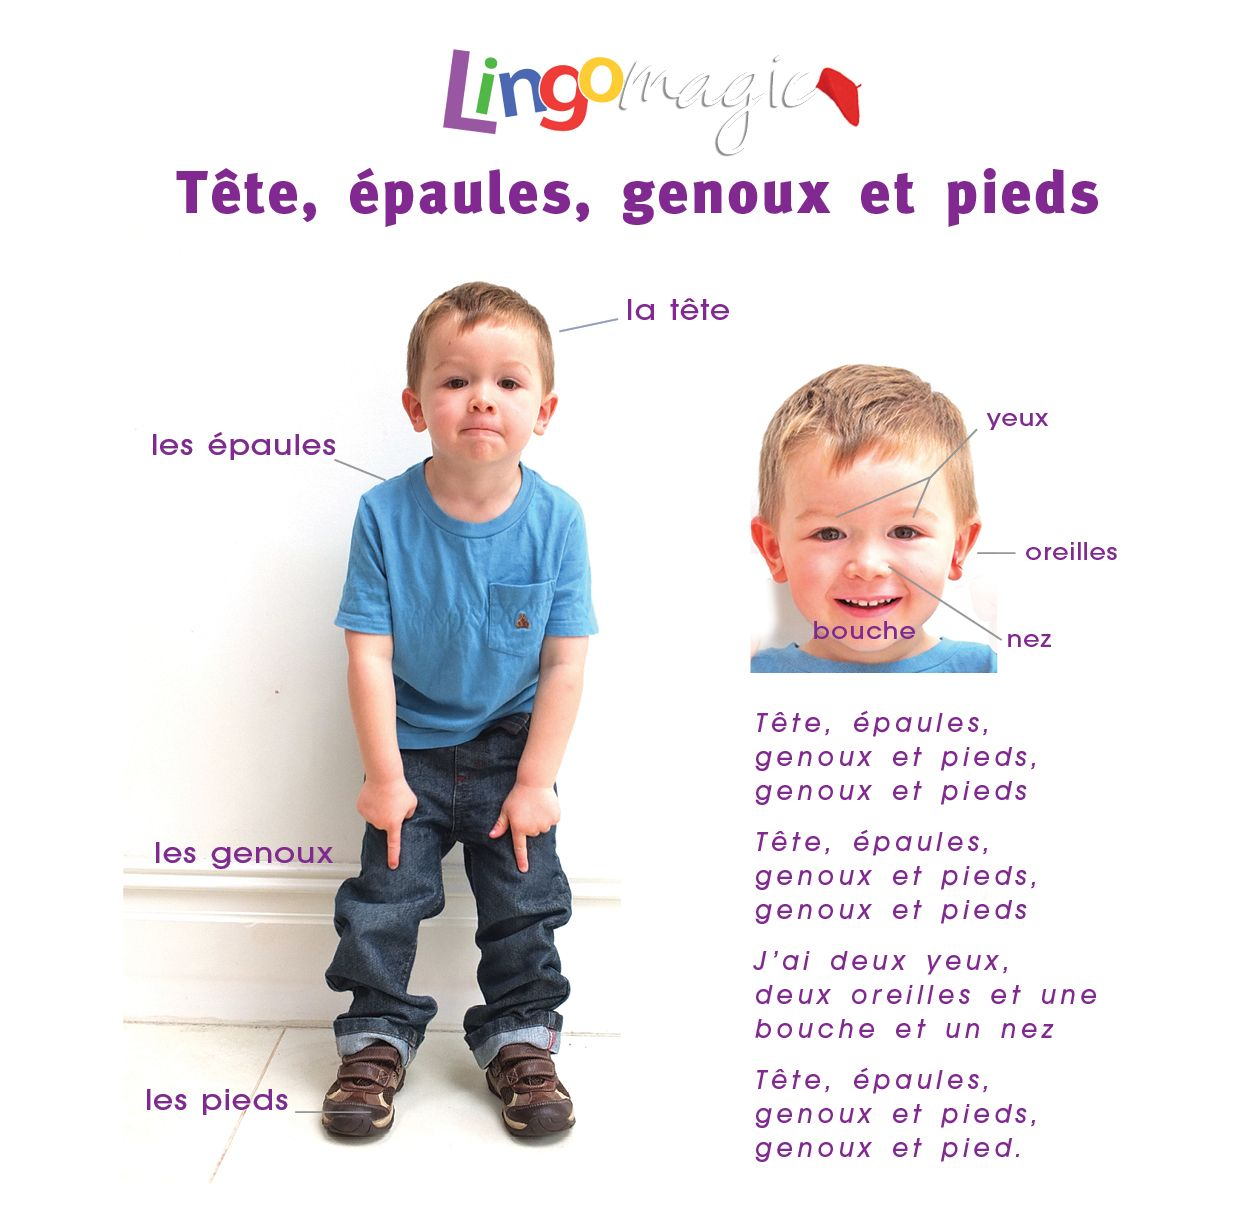 Tete Epaules Genoux Pieds Is A Great Song For Children